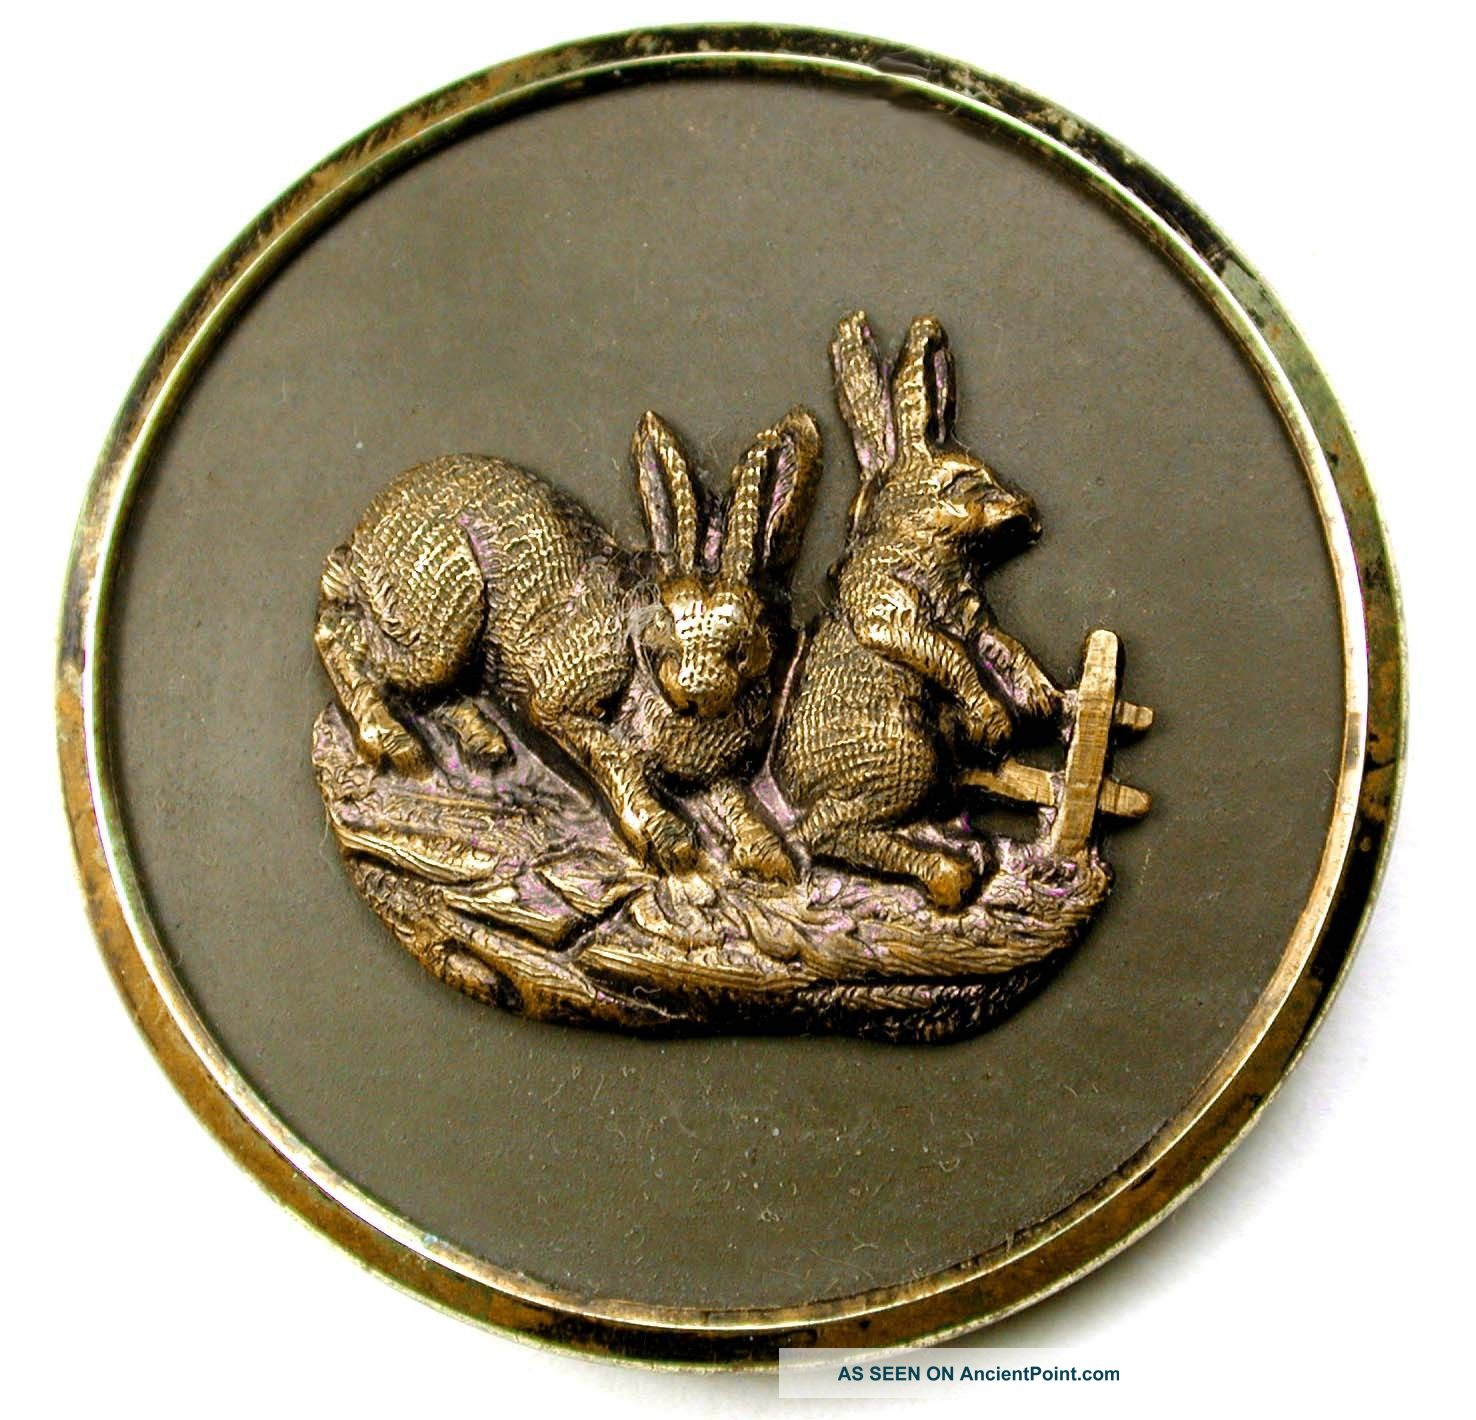 Lg Sz Antique Brass Button Detailed 2 Rabbits By A Fence - 1 & 1/2